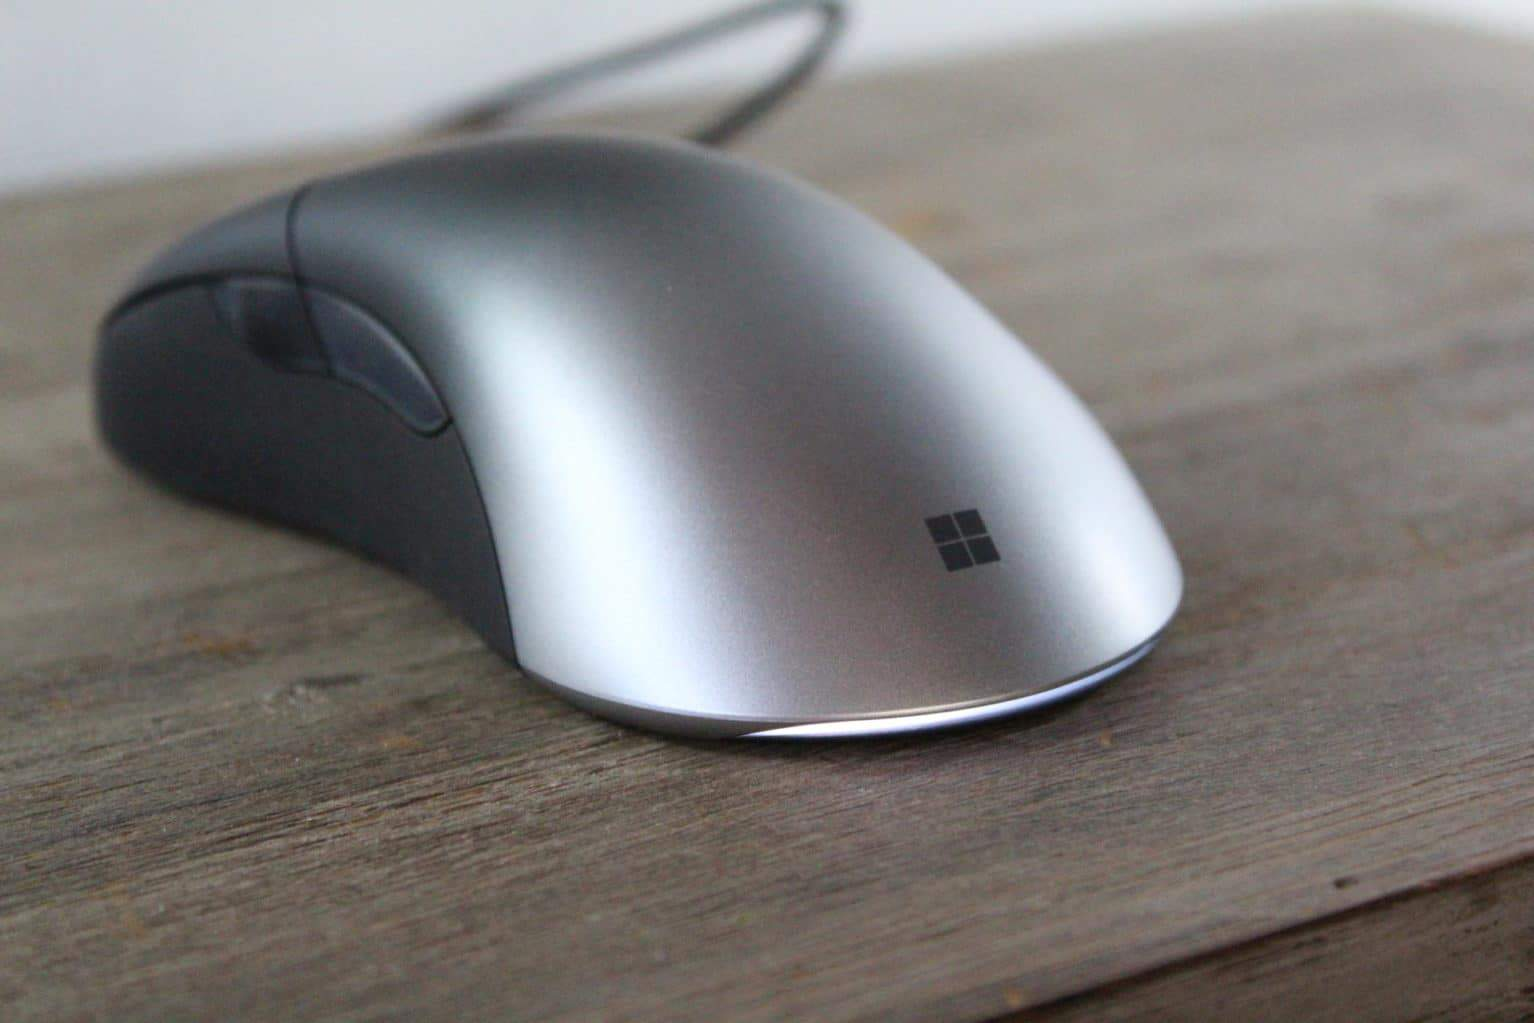 Microsoft Intellimouse Pro Review | ProSettings net